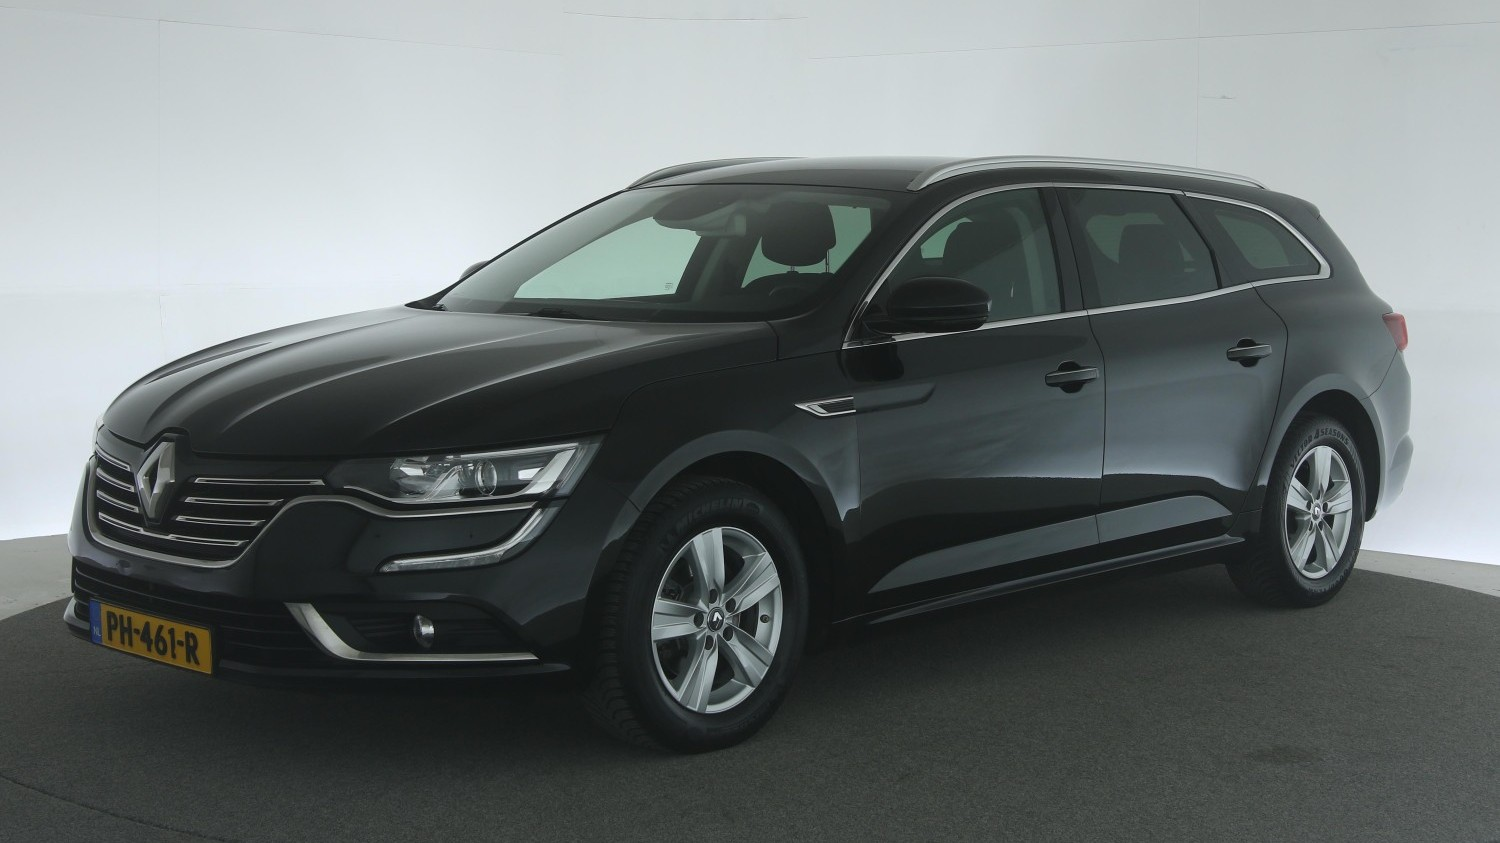 Renault Talisman Station 2017 PH-461-R 1